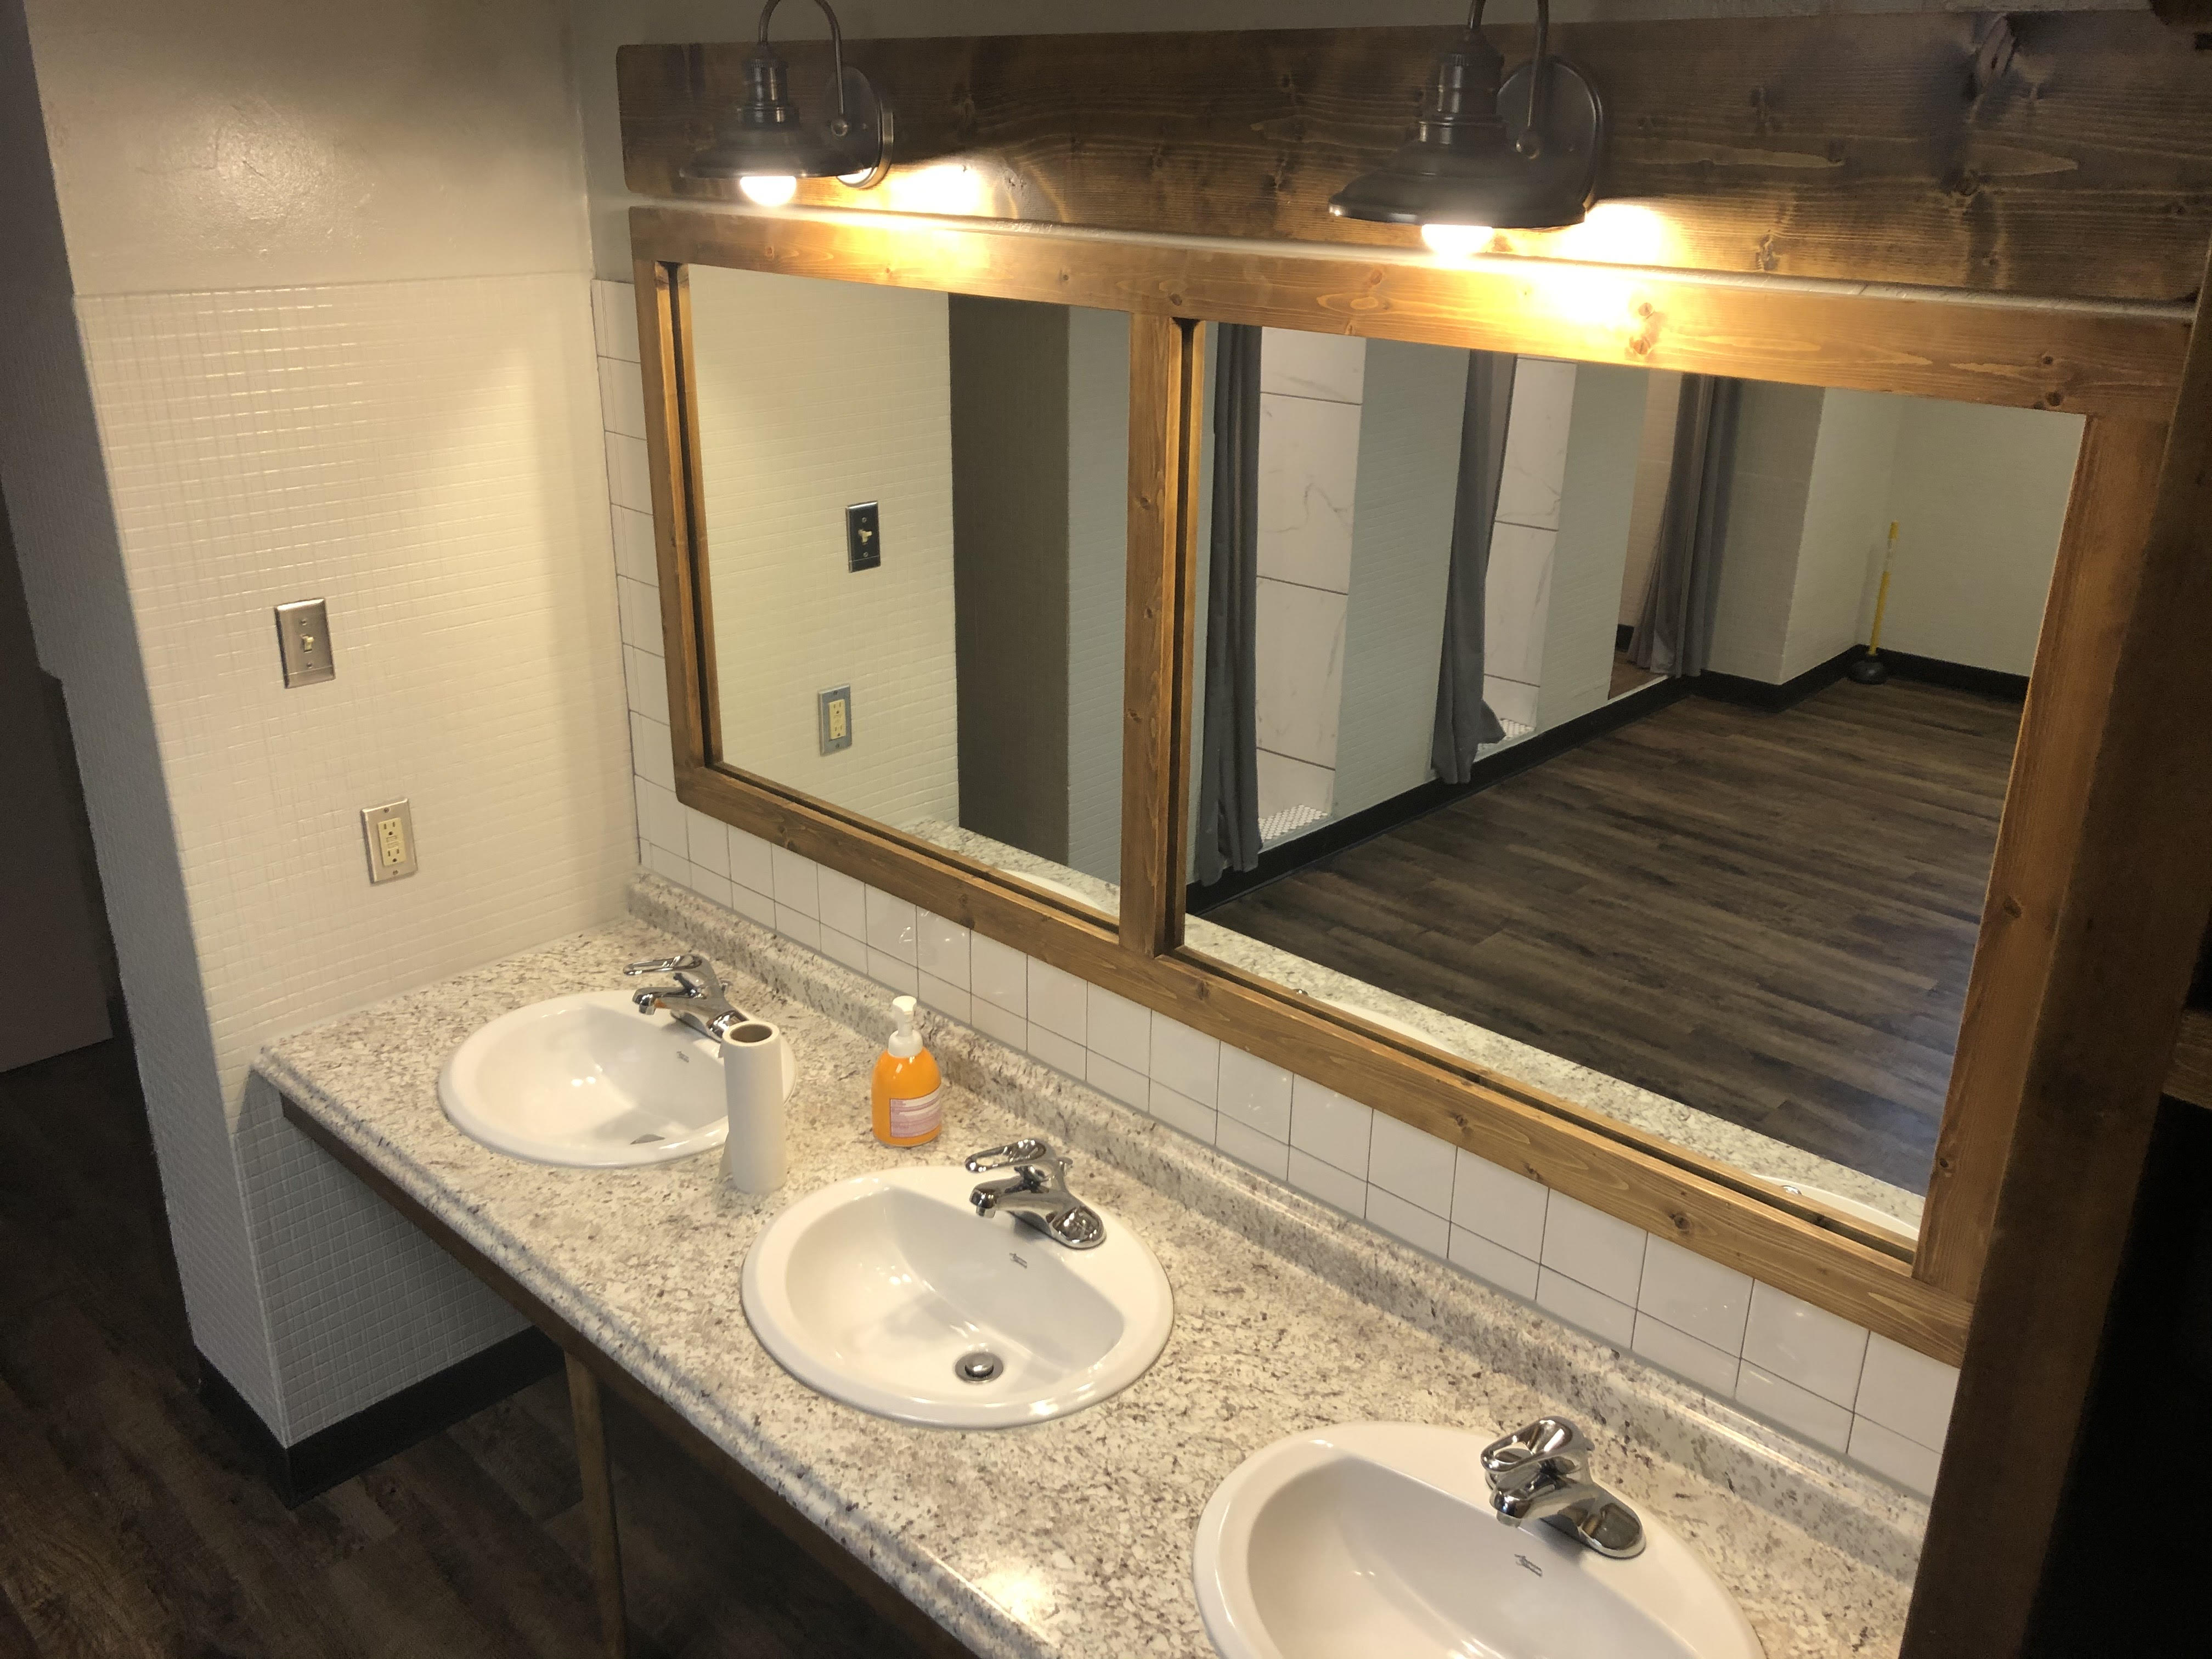 Long mirror with wood trim, two lights and three sinks